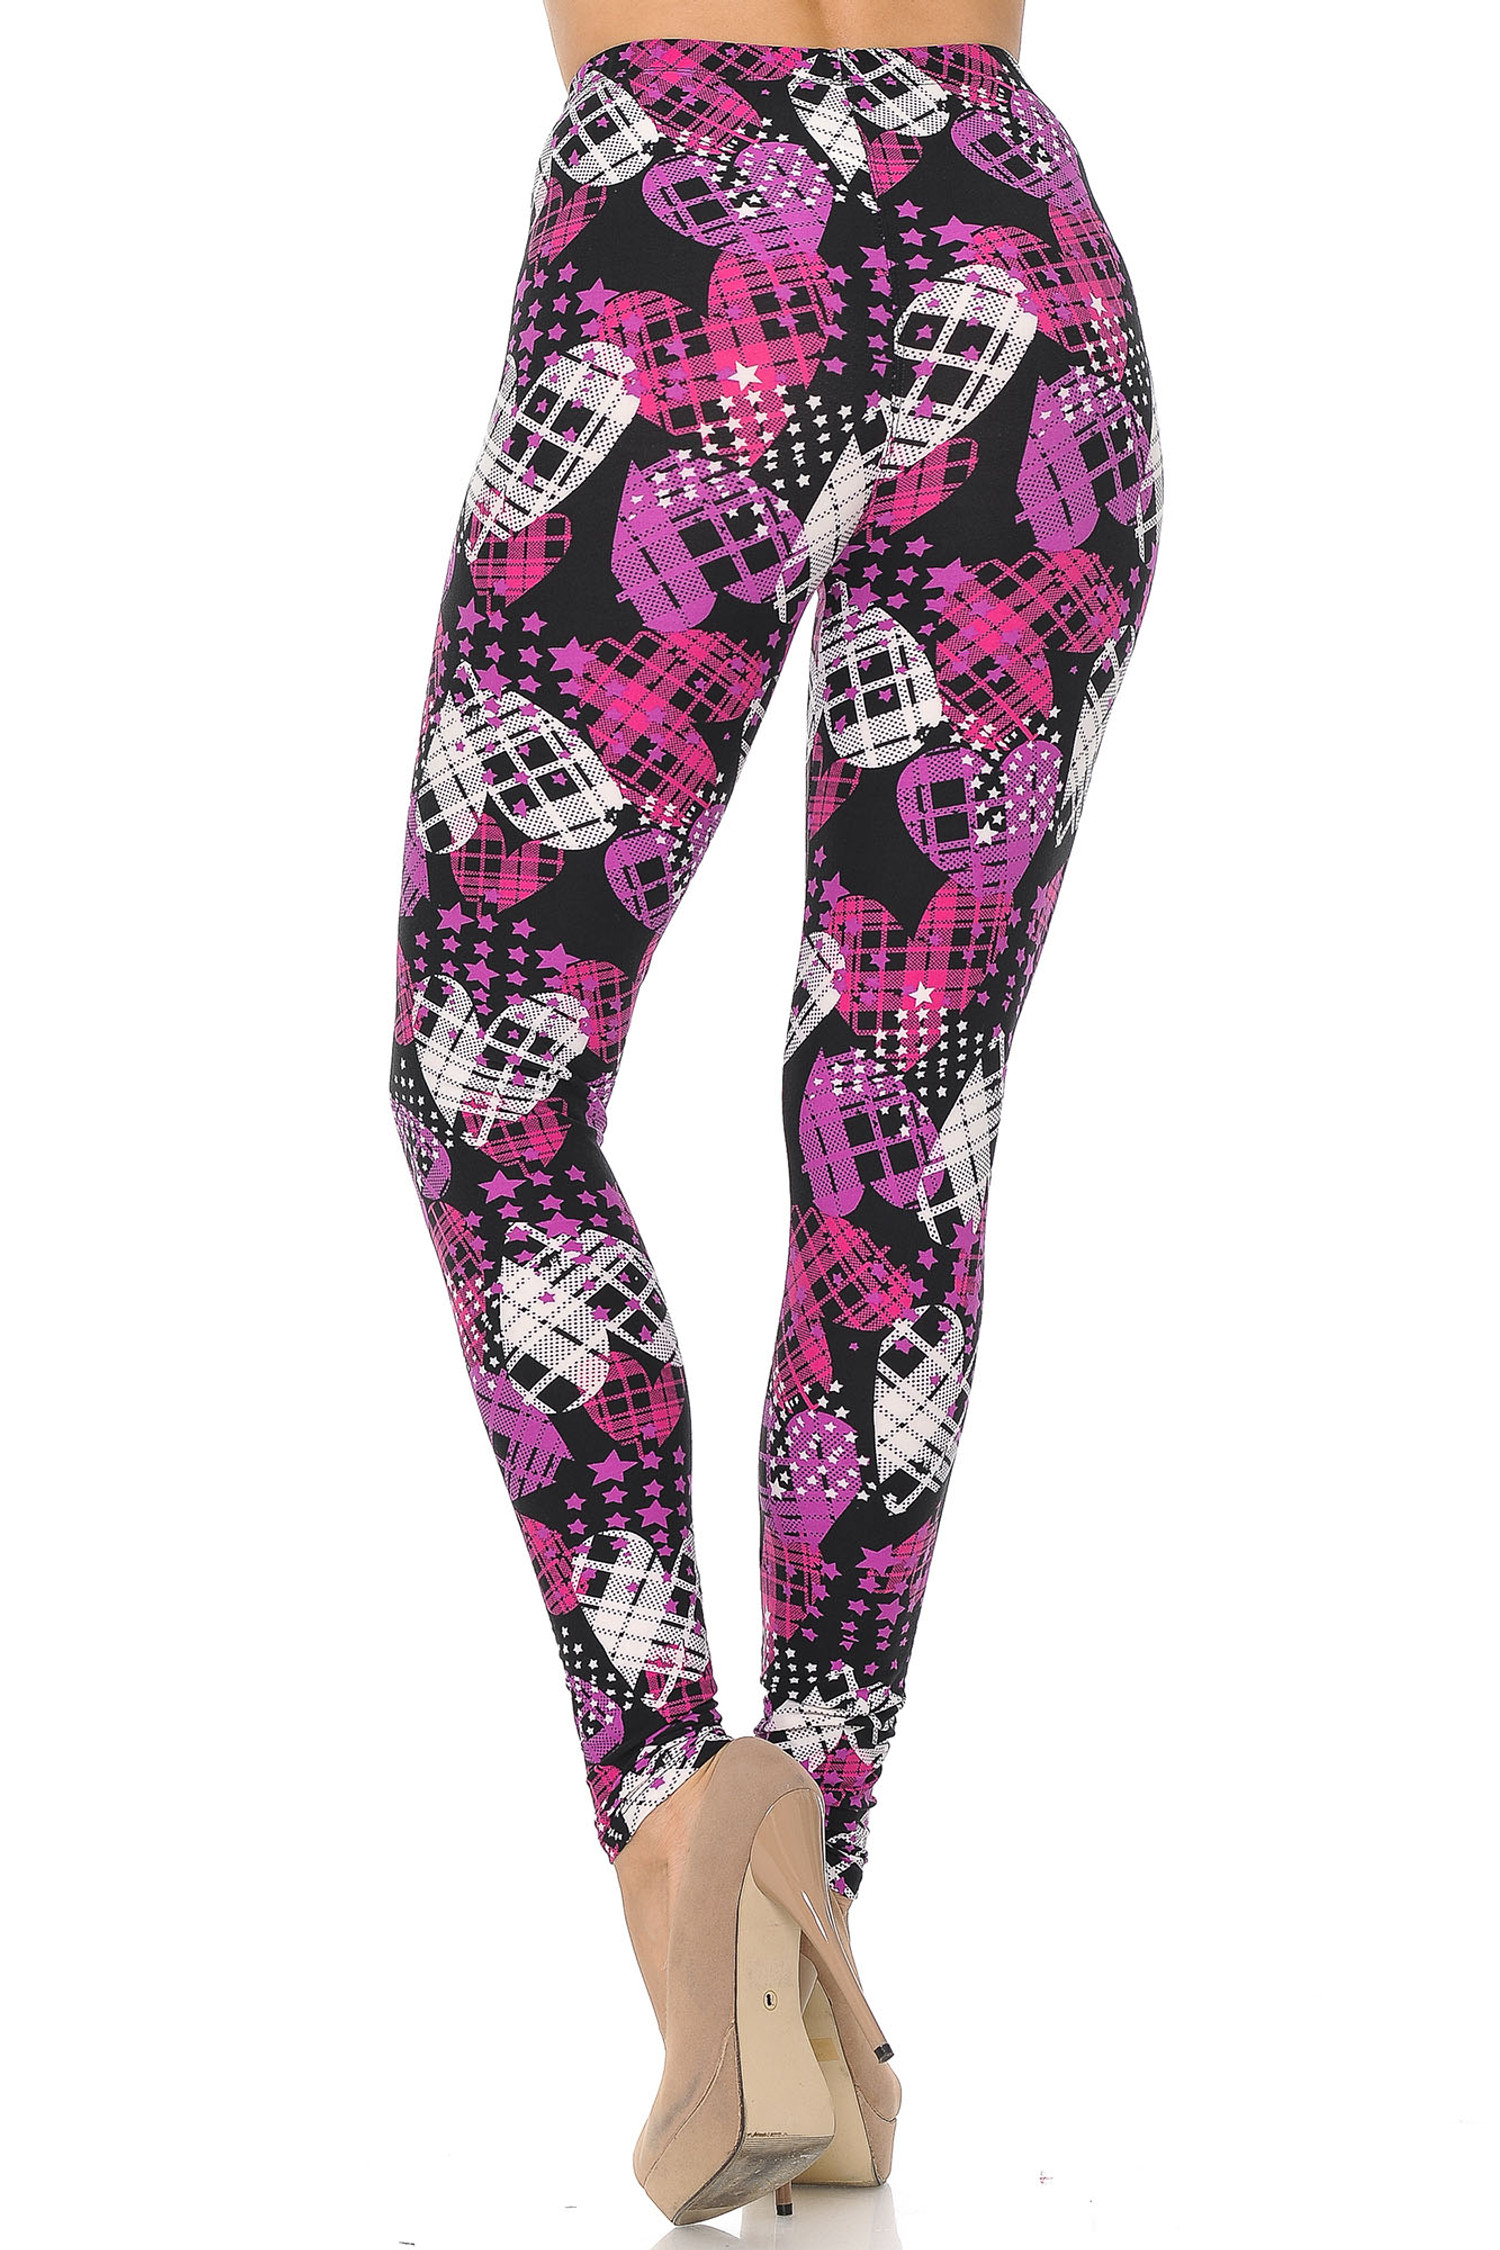 Soft Brushed Stars and Plaid Hearts Plus Size Leggings